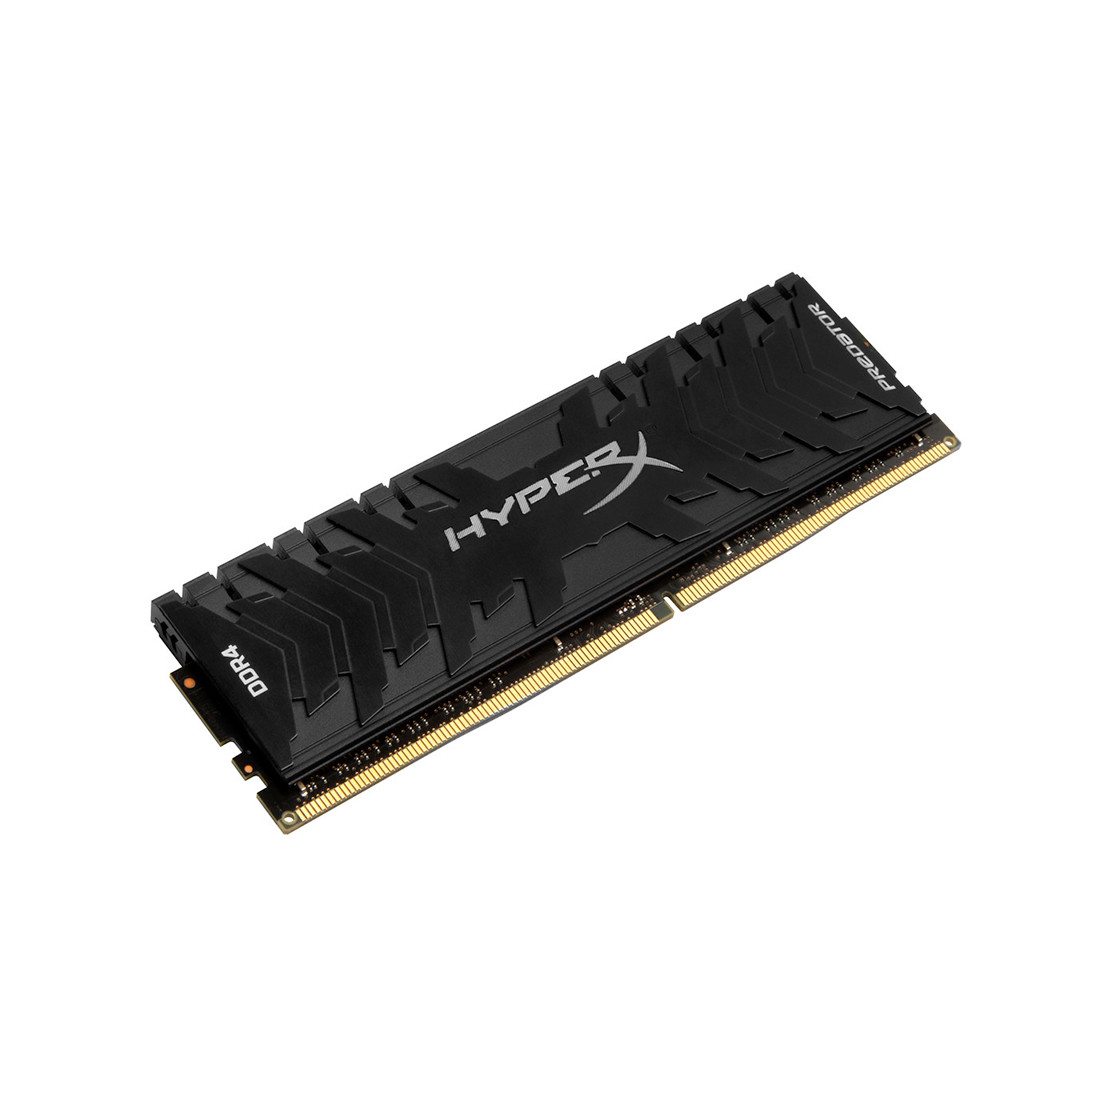 Модуль памяти Kingston HyperX Predator HX426C13PB3/16 (DDR4, 16GB, DIMM)